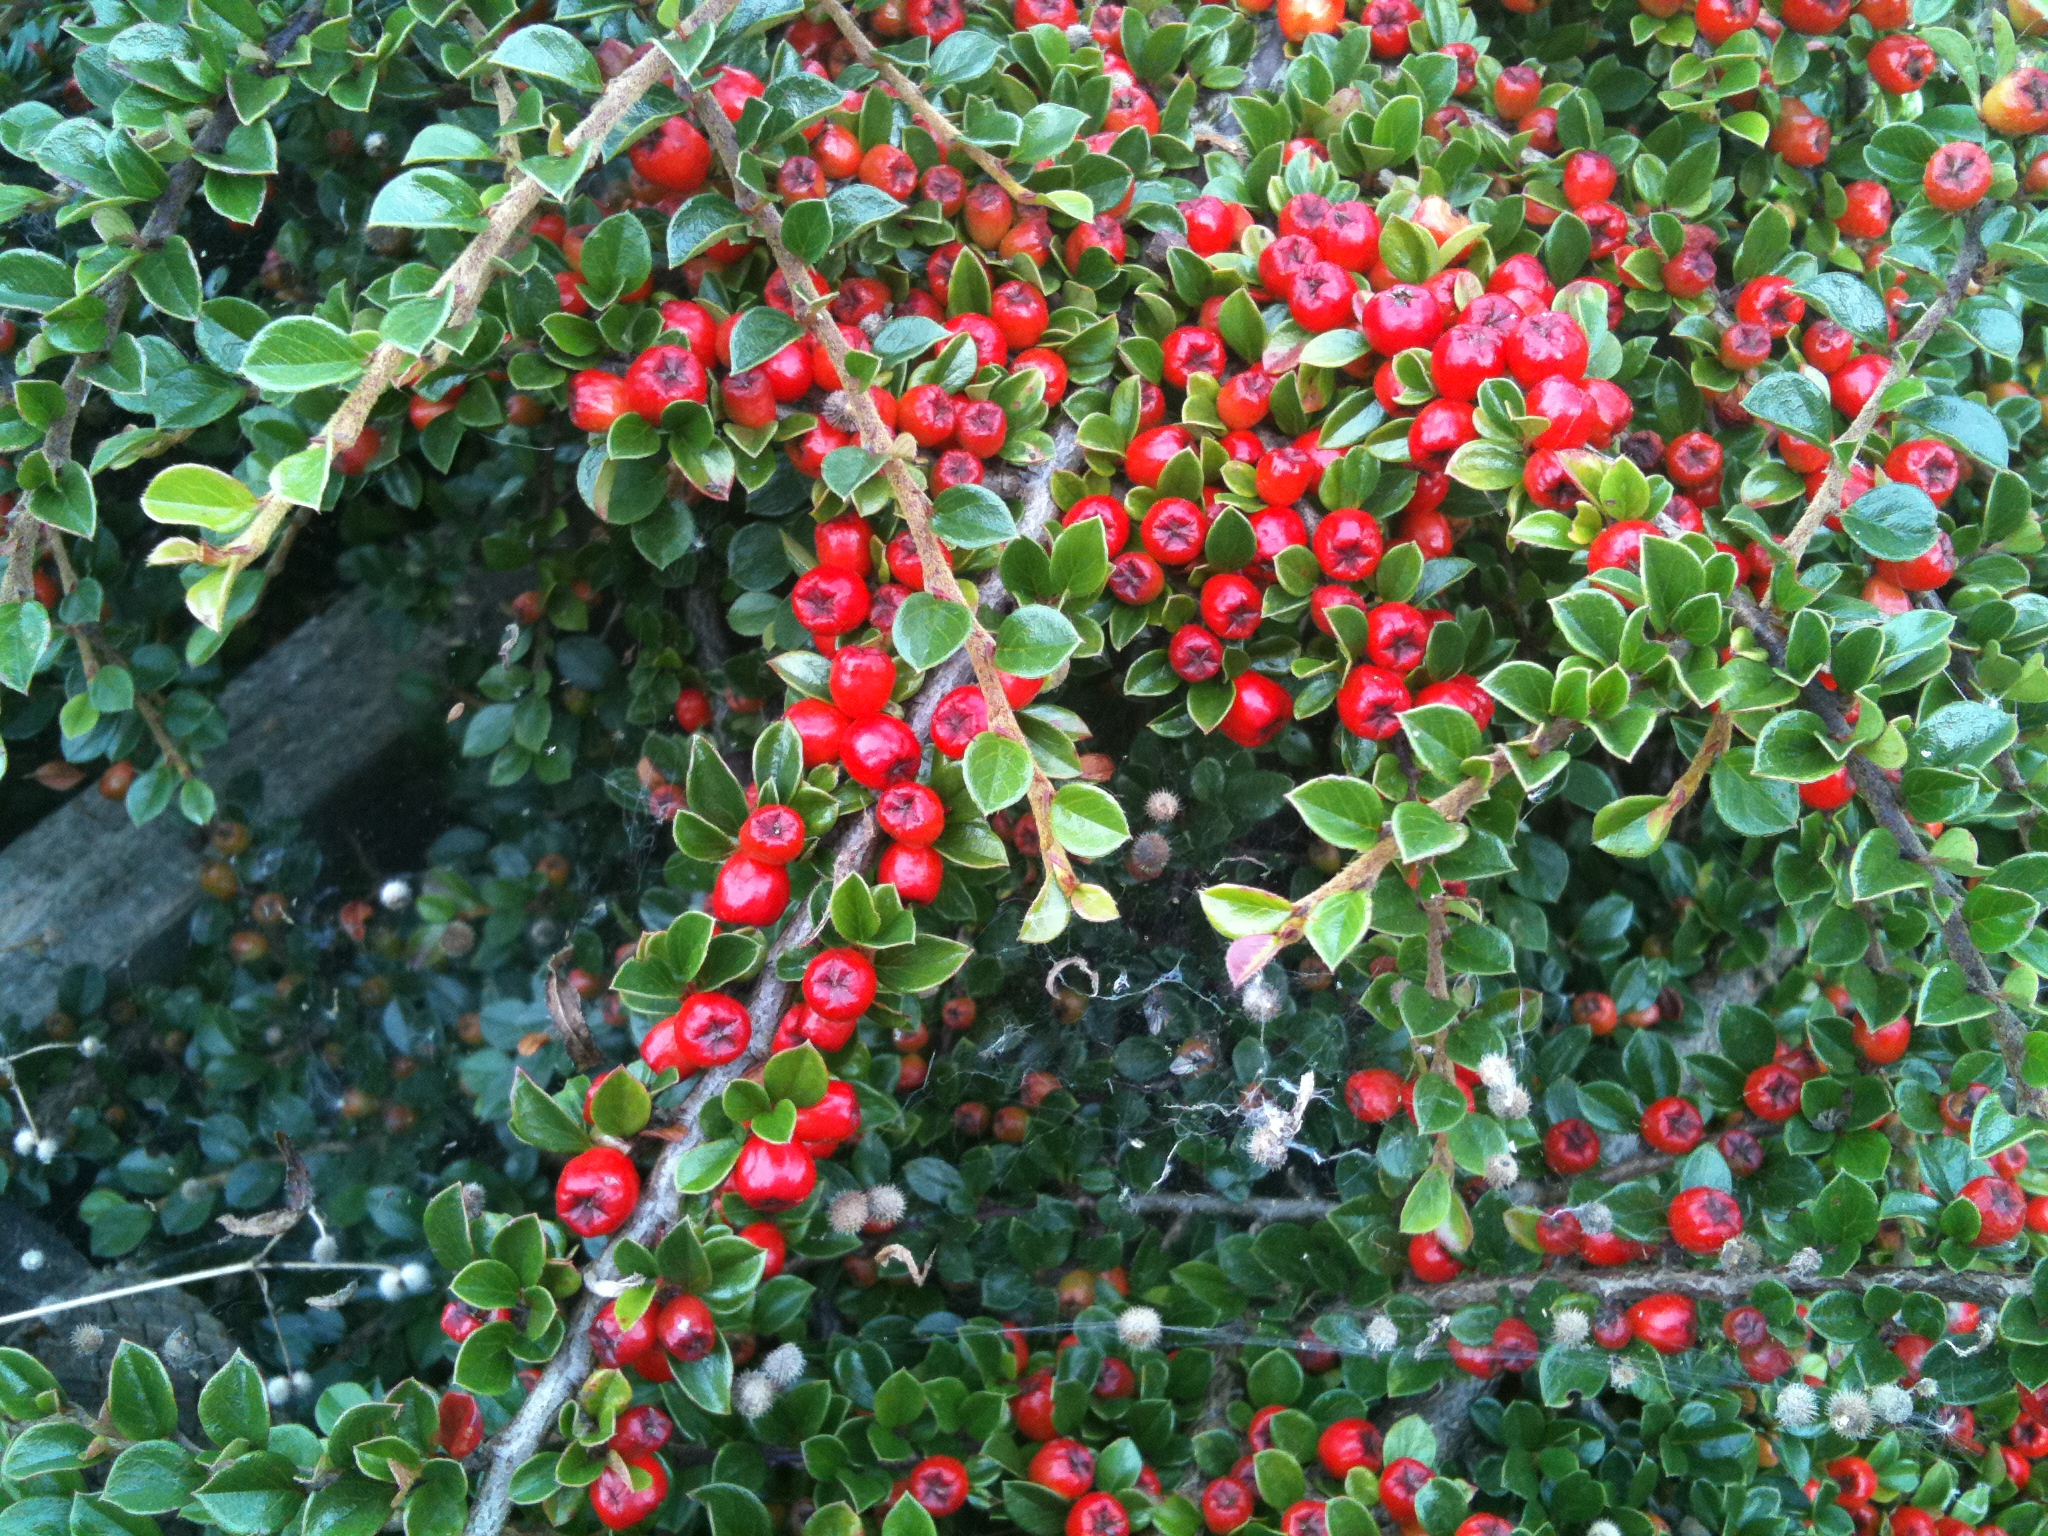 Landscaping Shrubs With Red Berries : Gallery for gt poisonous red berry bushes